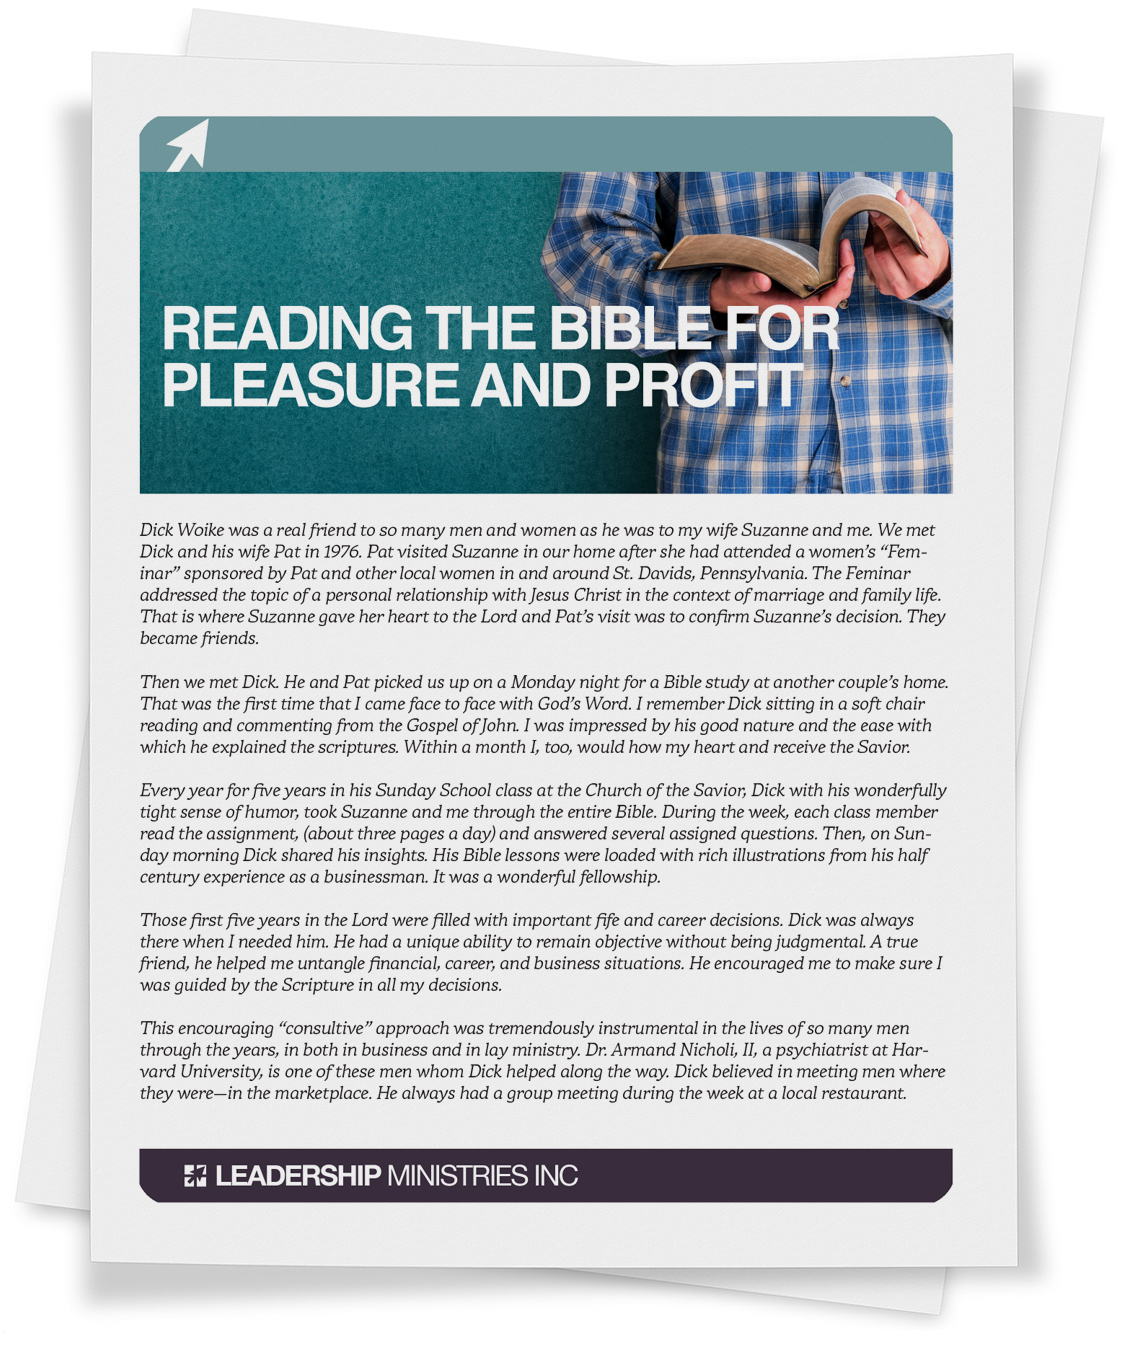 Reading the Bible for Pleasure and Profit